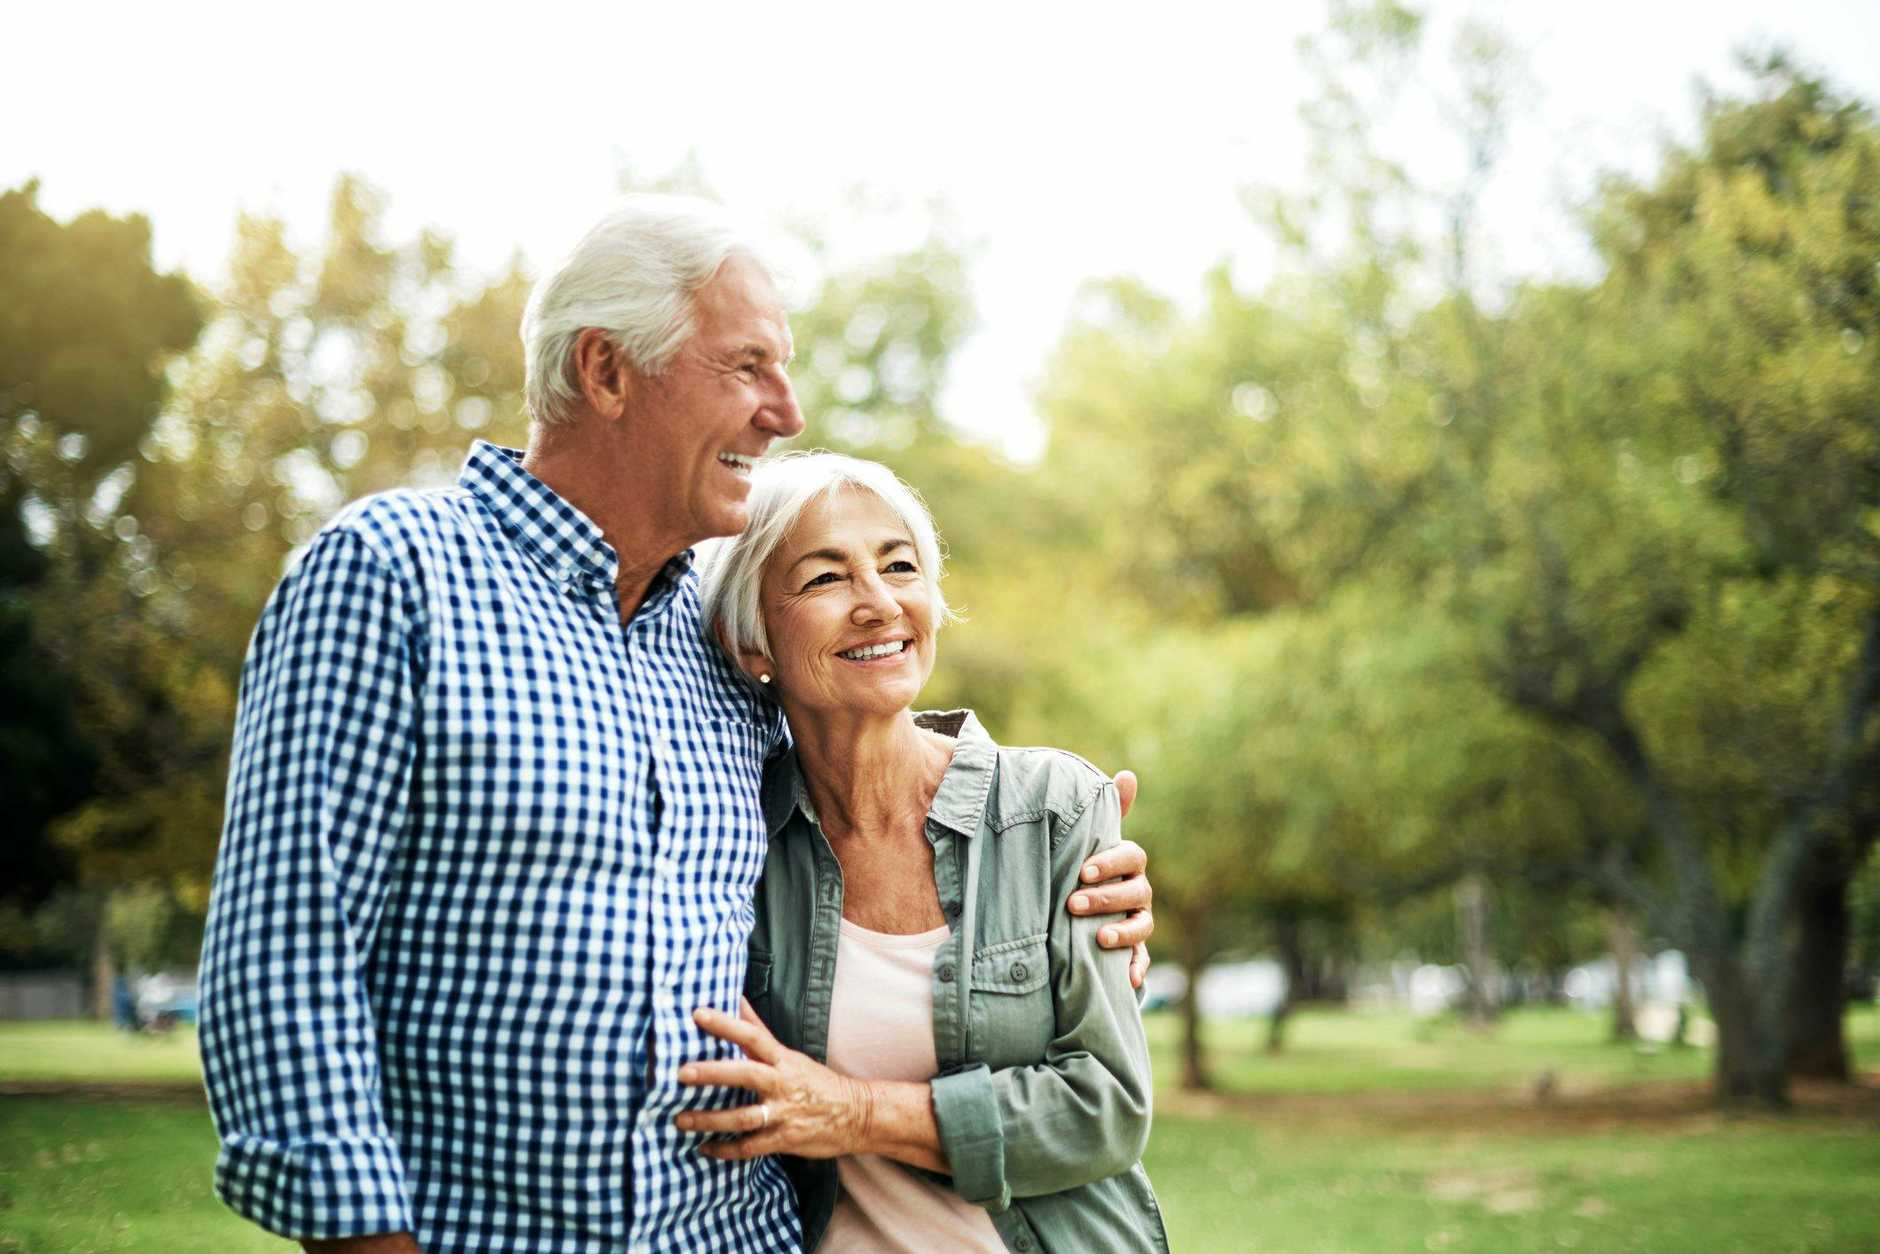 FAIR-GO: Budget submission recommendations have provided practical ways to ensure Australian pensioners standard of living, keeps pace with community expectations.